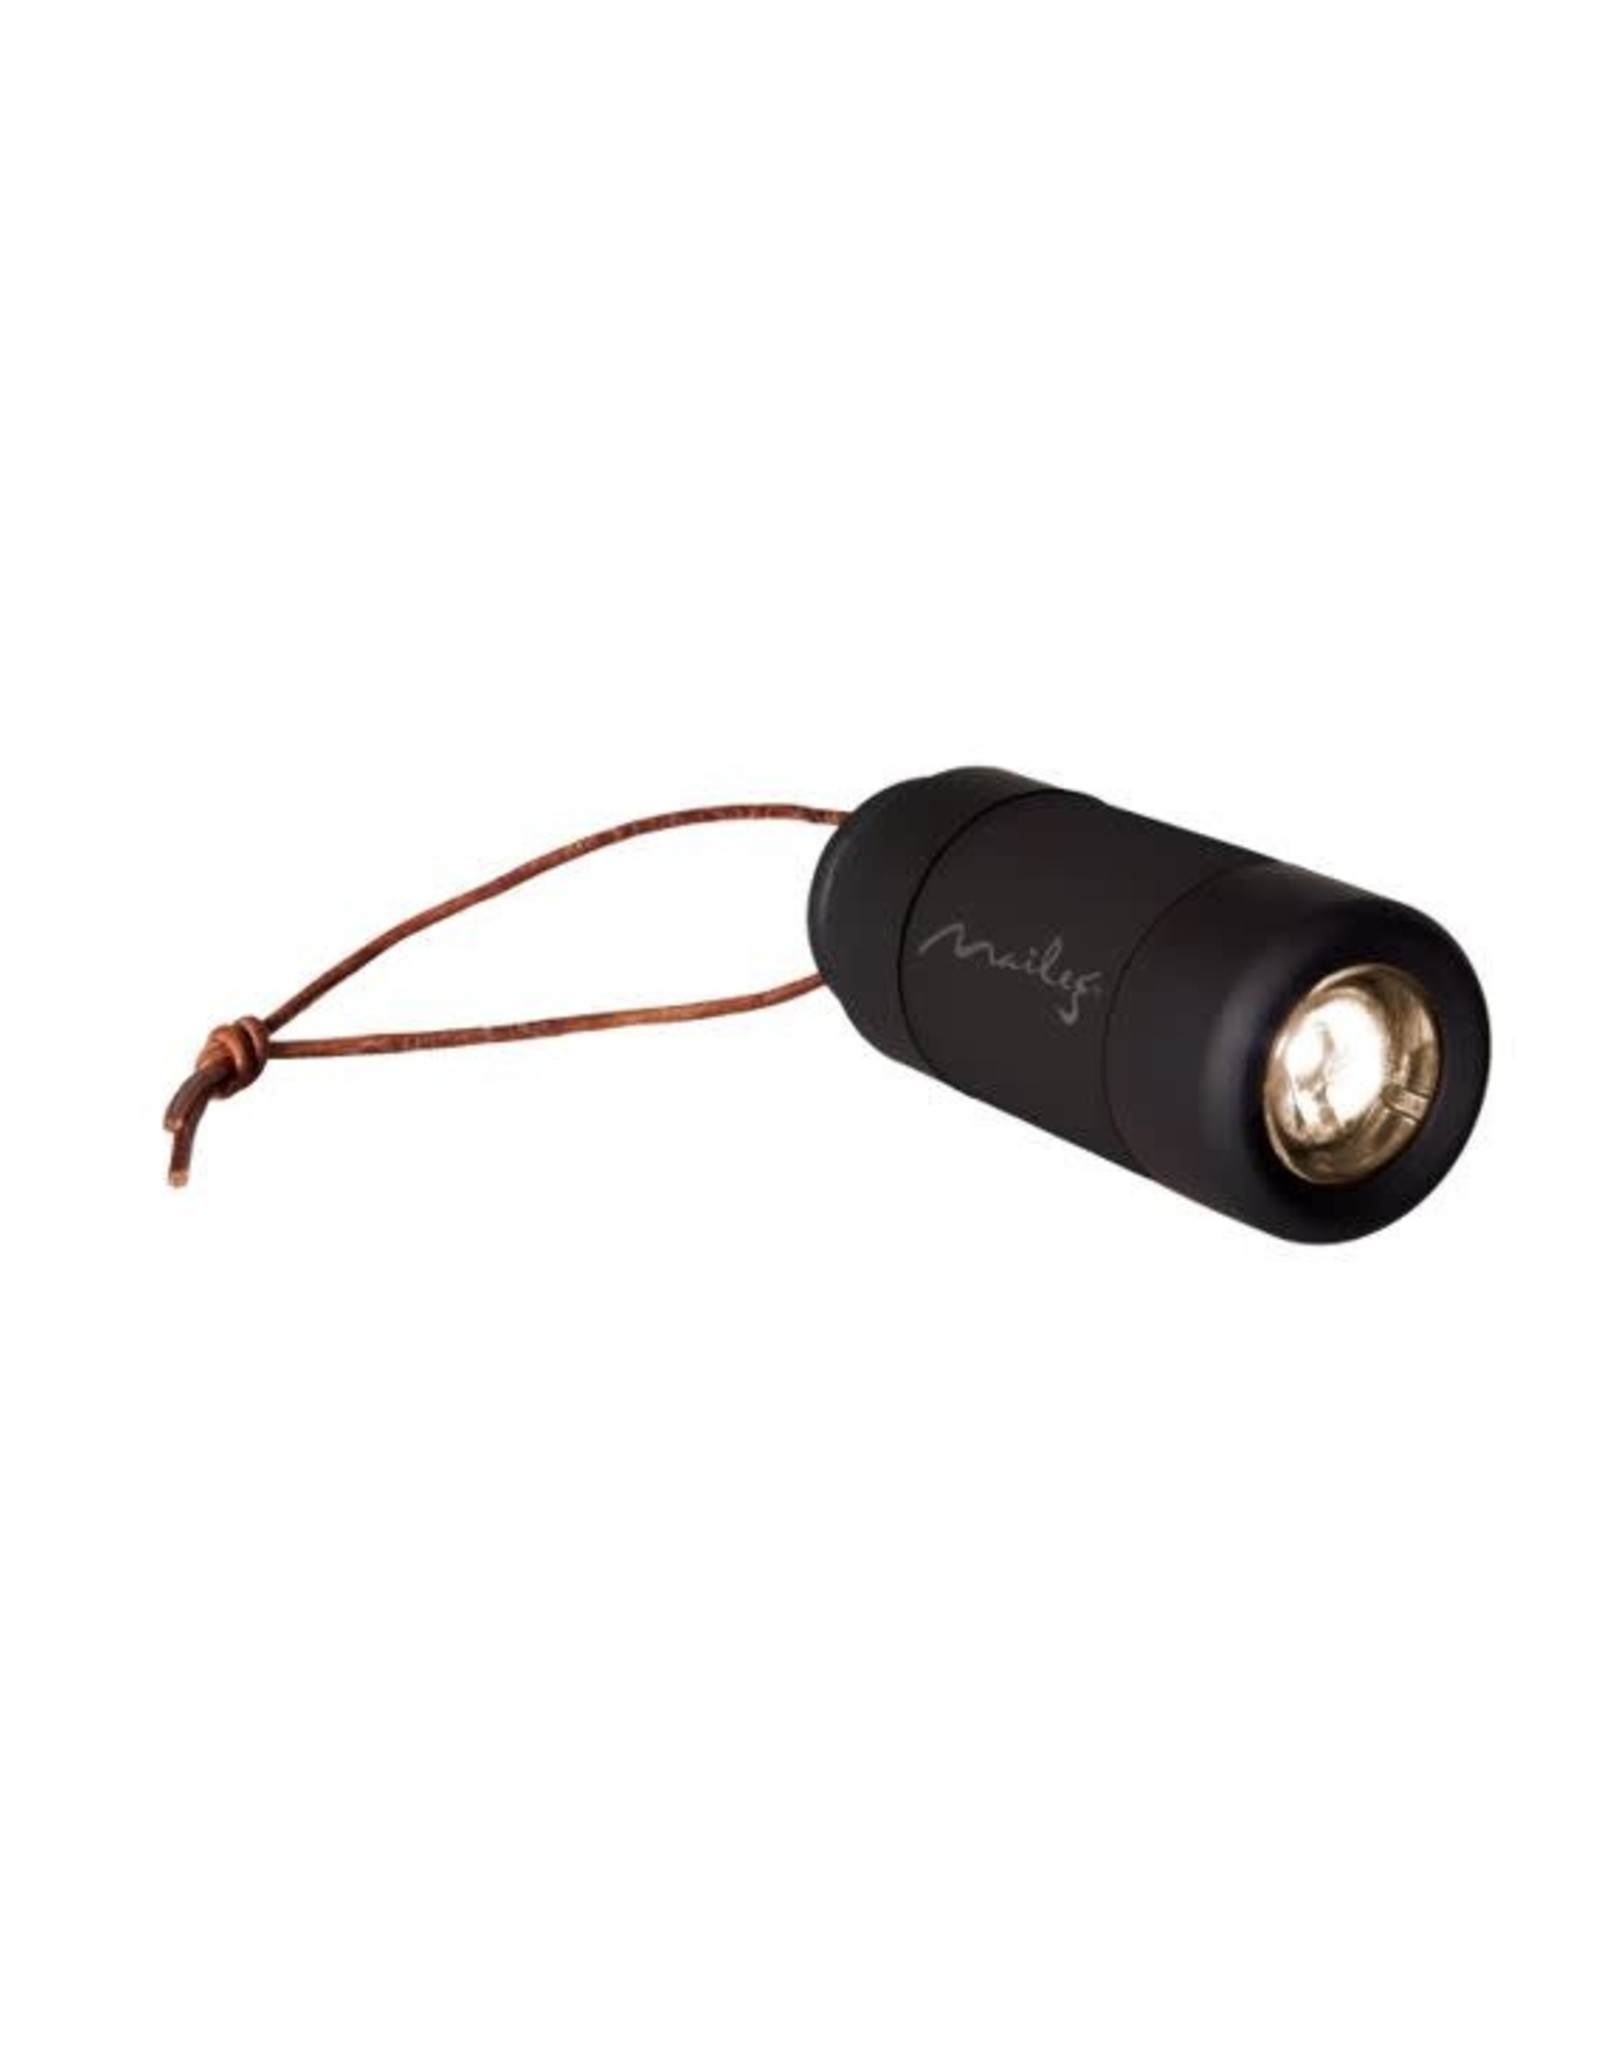 Mini Flashlight - Black